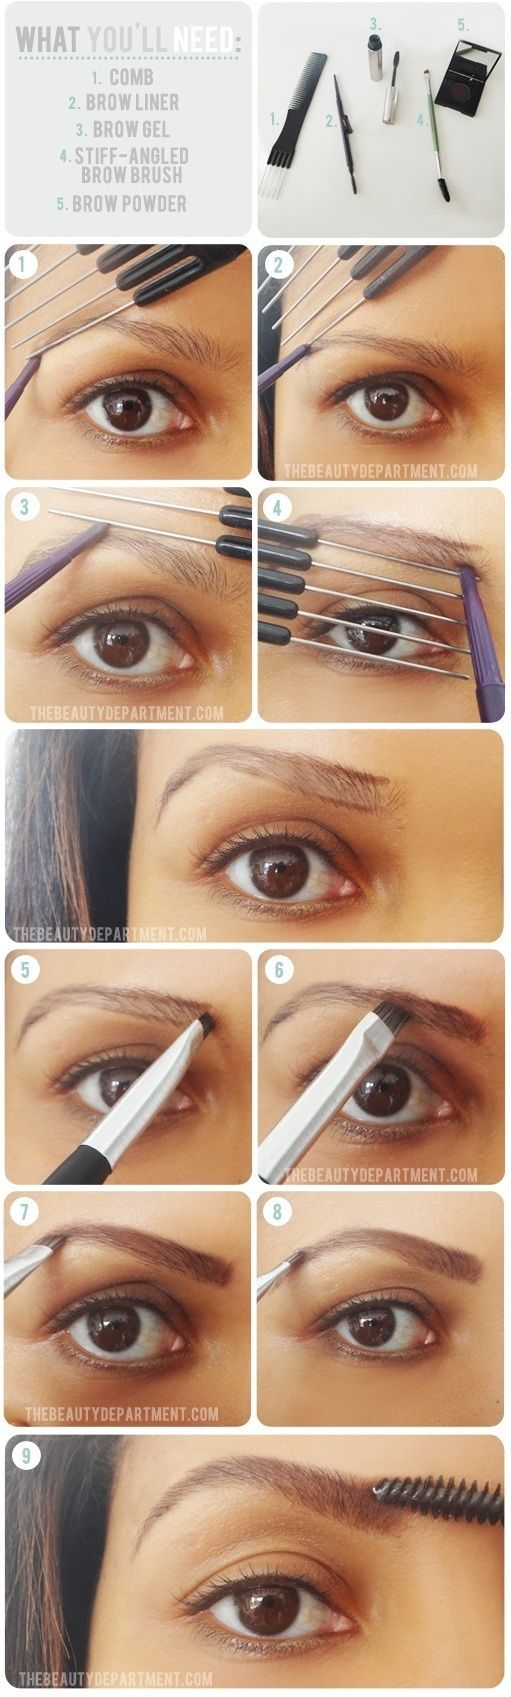 Glam Radar | Tips for Getting the Perfect Brows: